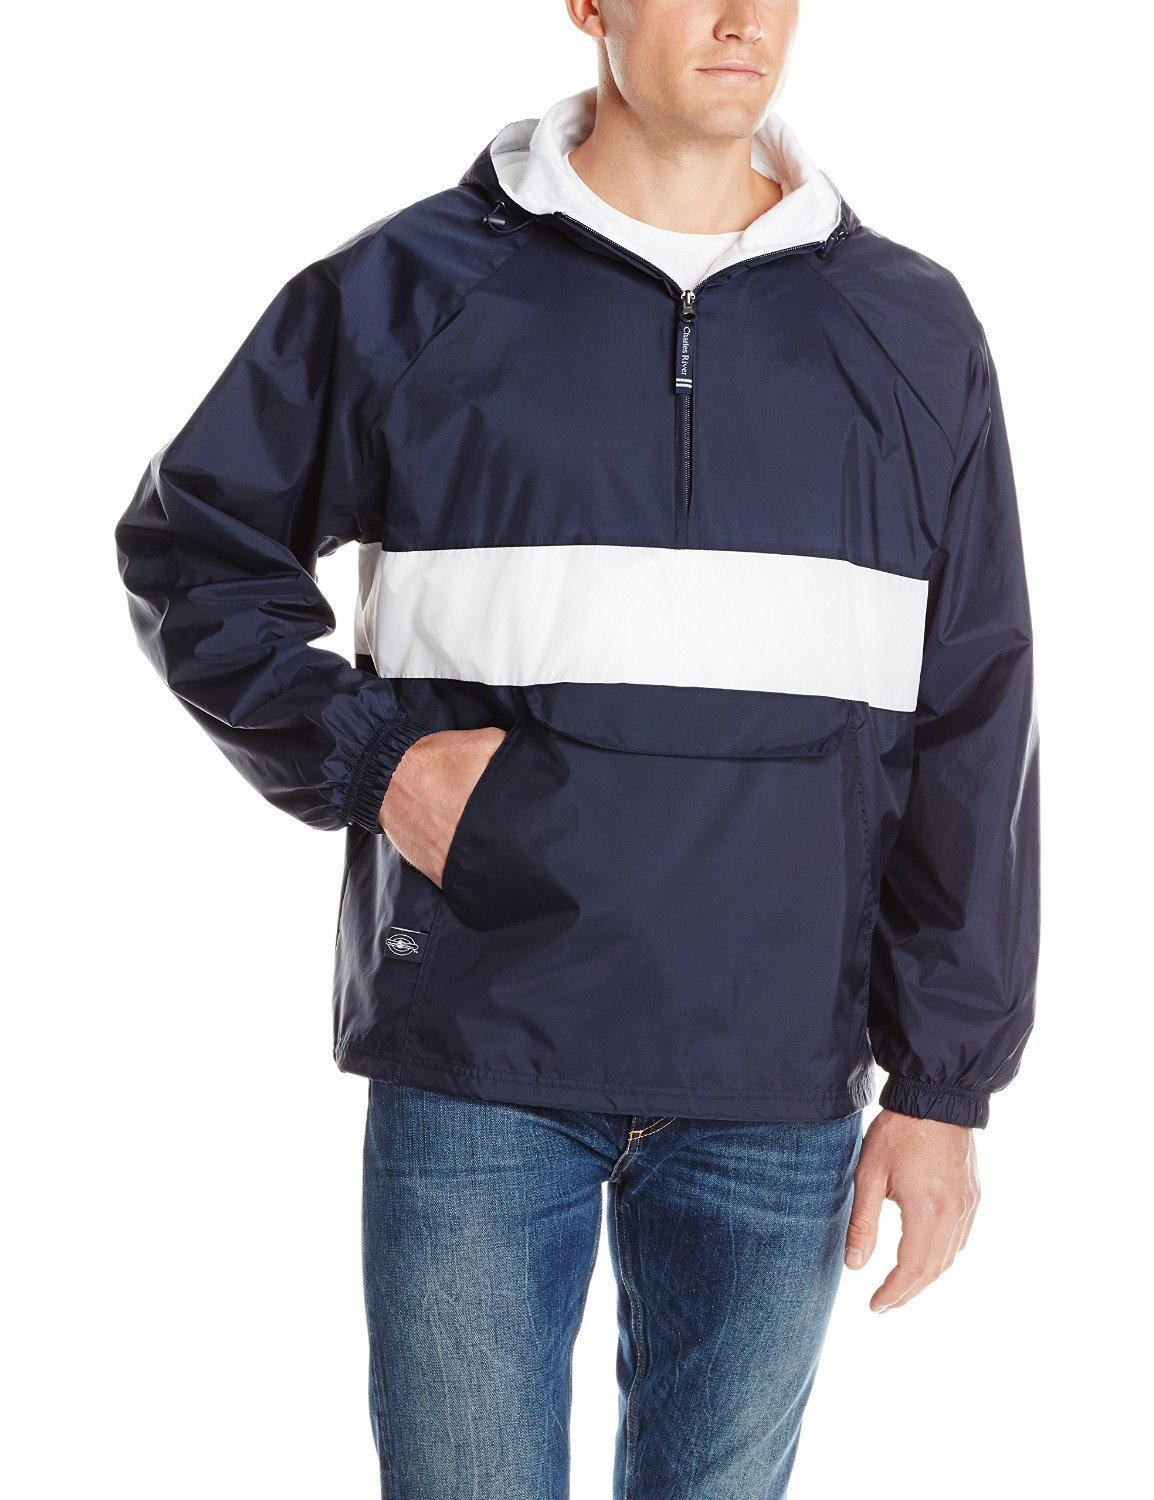 Charles River Apparel Men's Classic Striped Pullover Jacket, Navy/White, X-Large